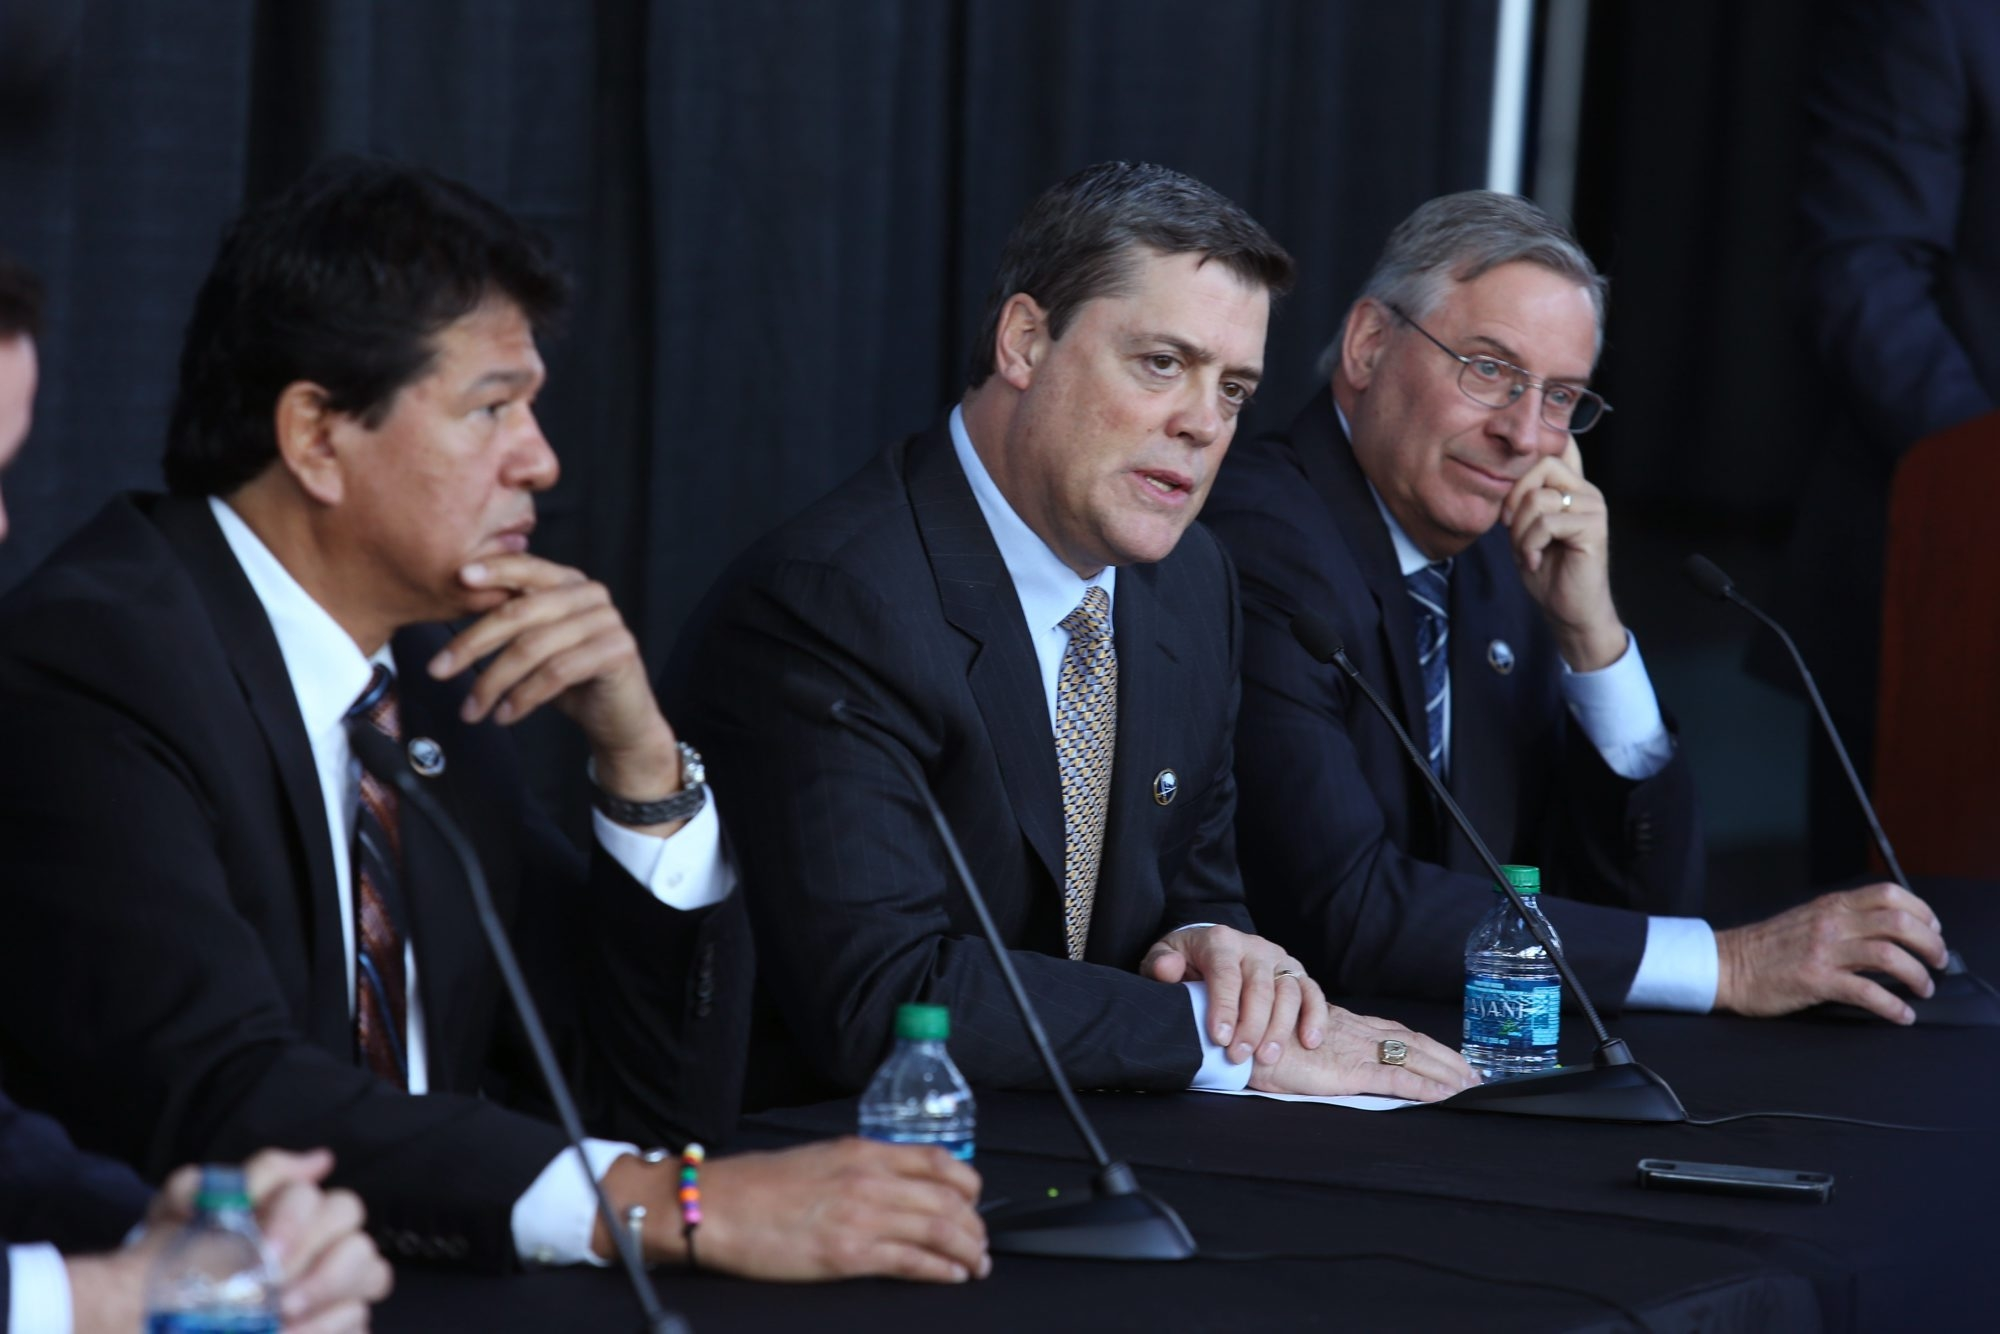 From left, new interim Sabres coach Ted Nolan, new President of Hockey Operations Pat LaFontaine and owner Terry Pegula address a news conference in First Niagara Center.